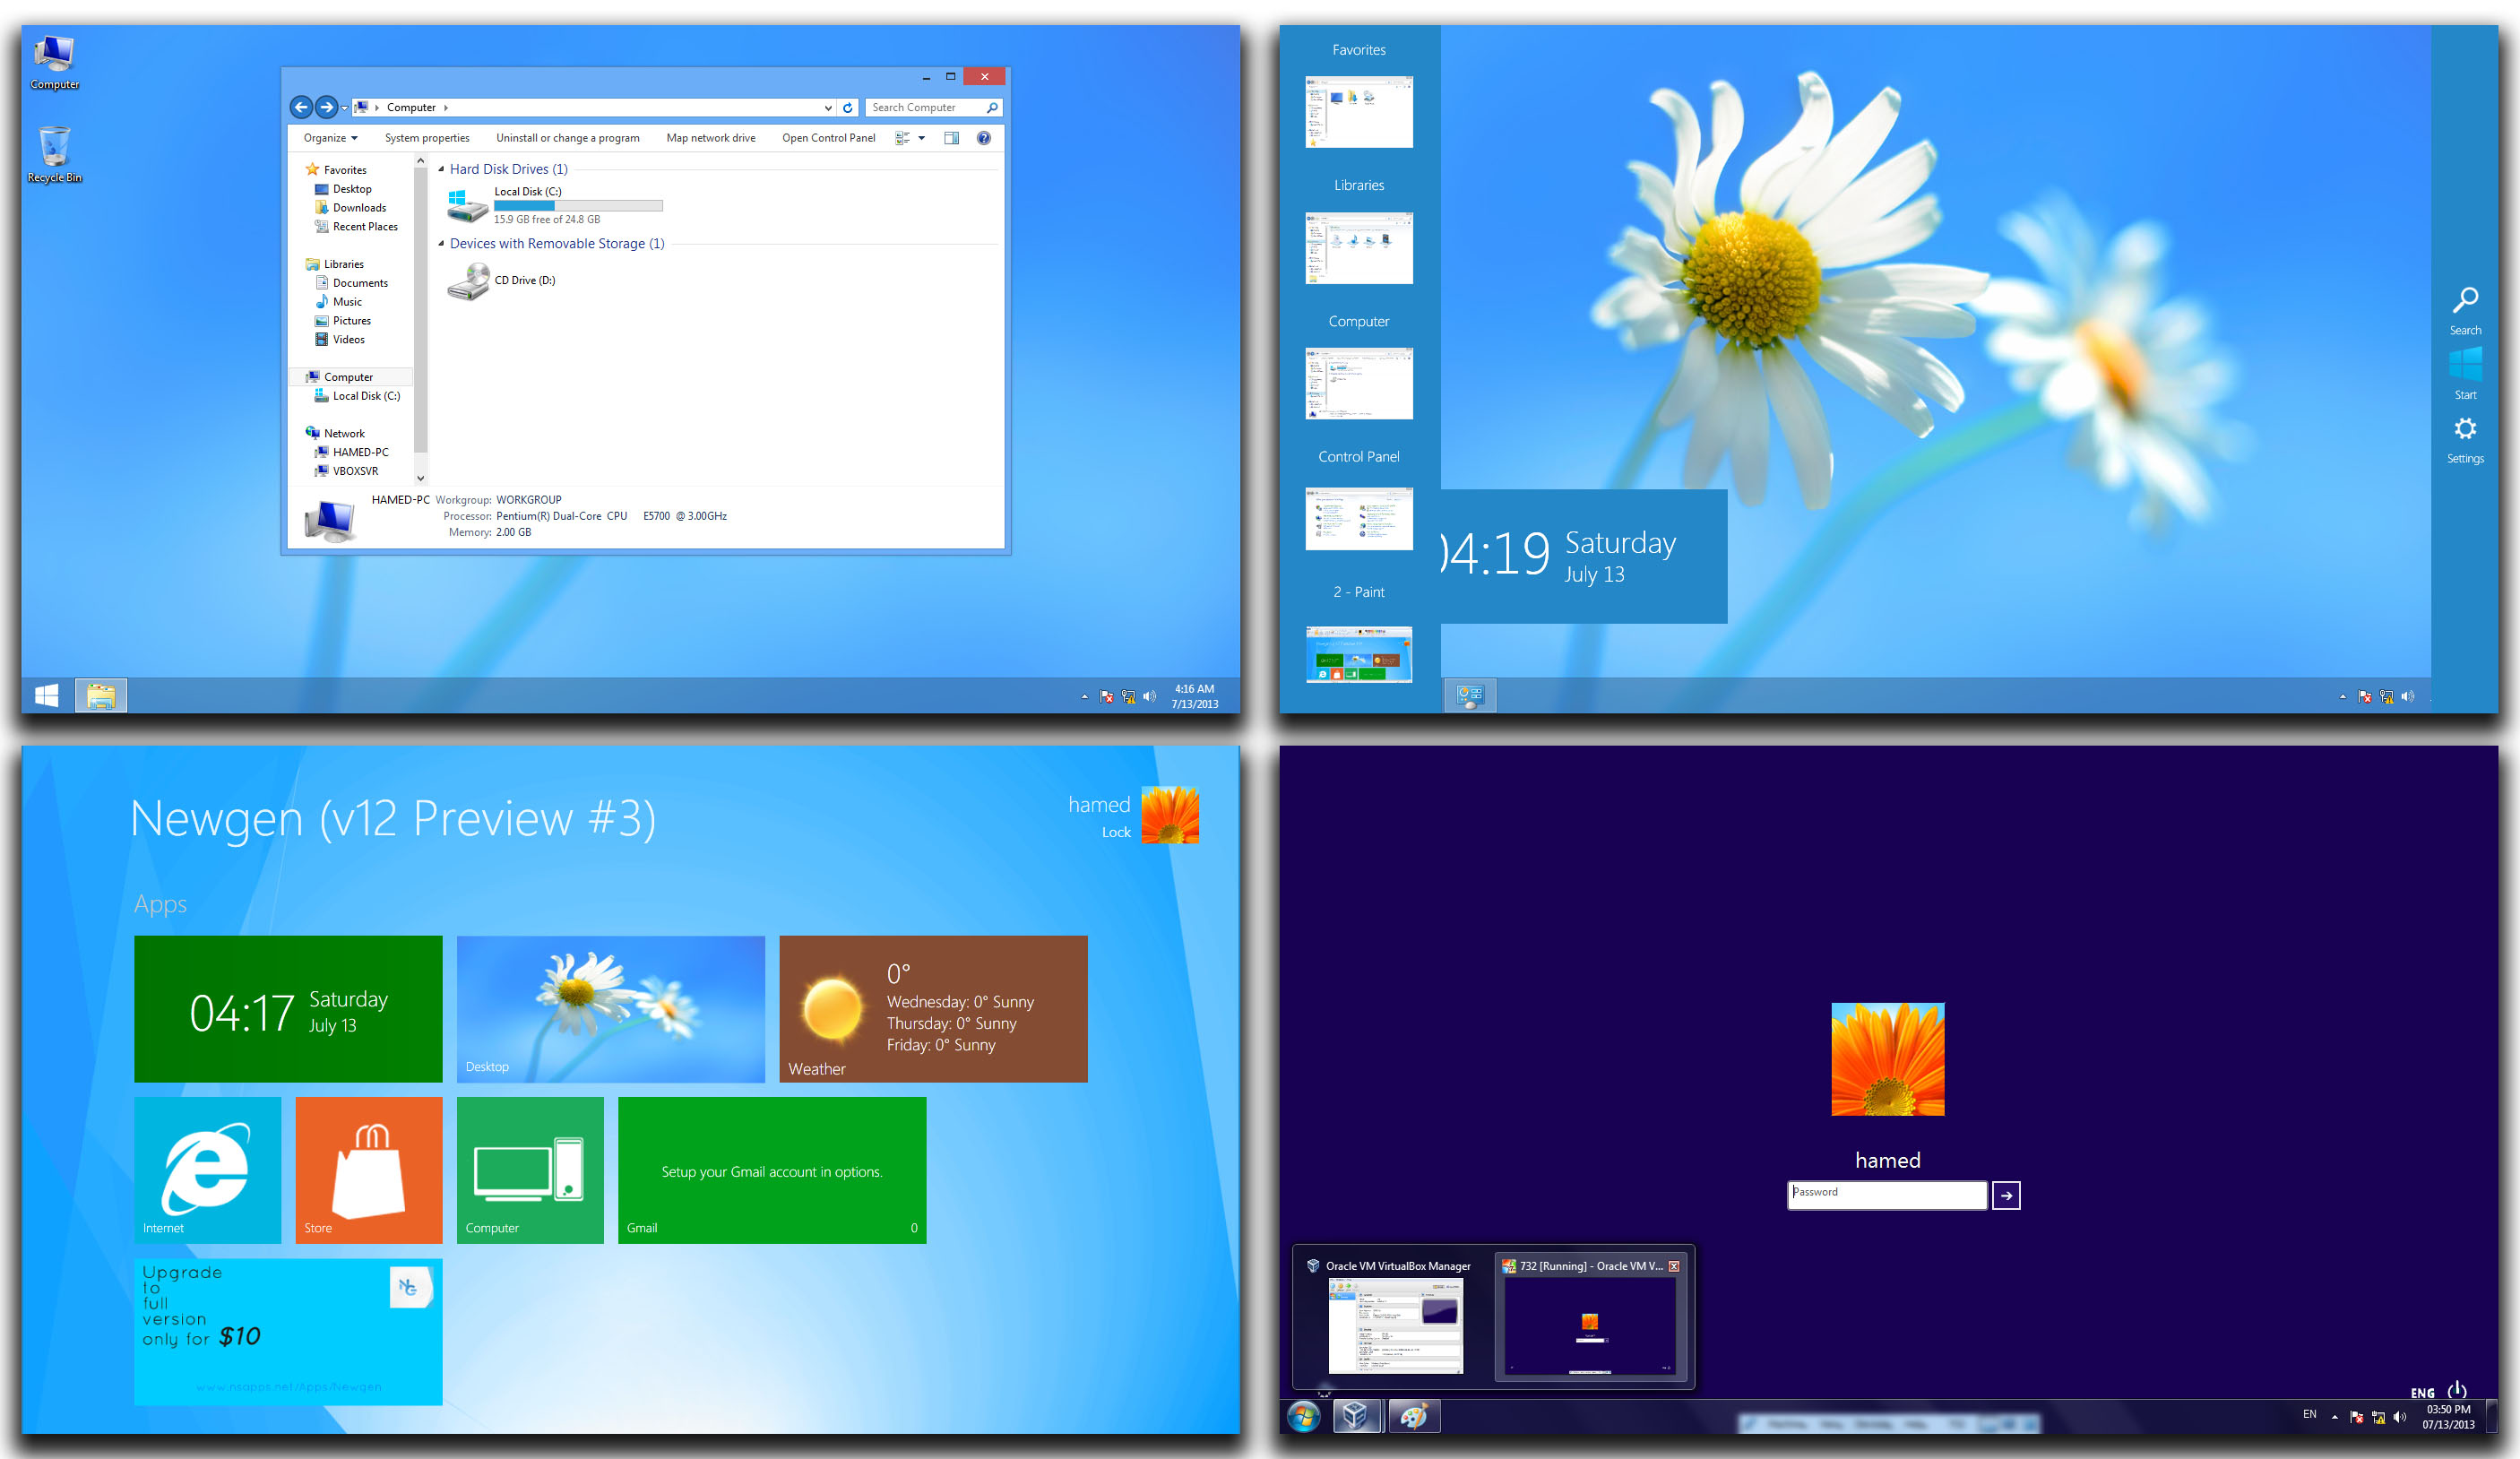 windows 8.1 skin pack